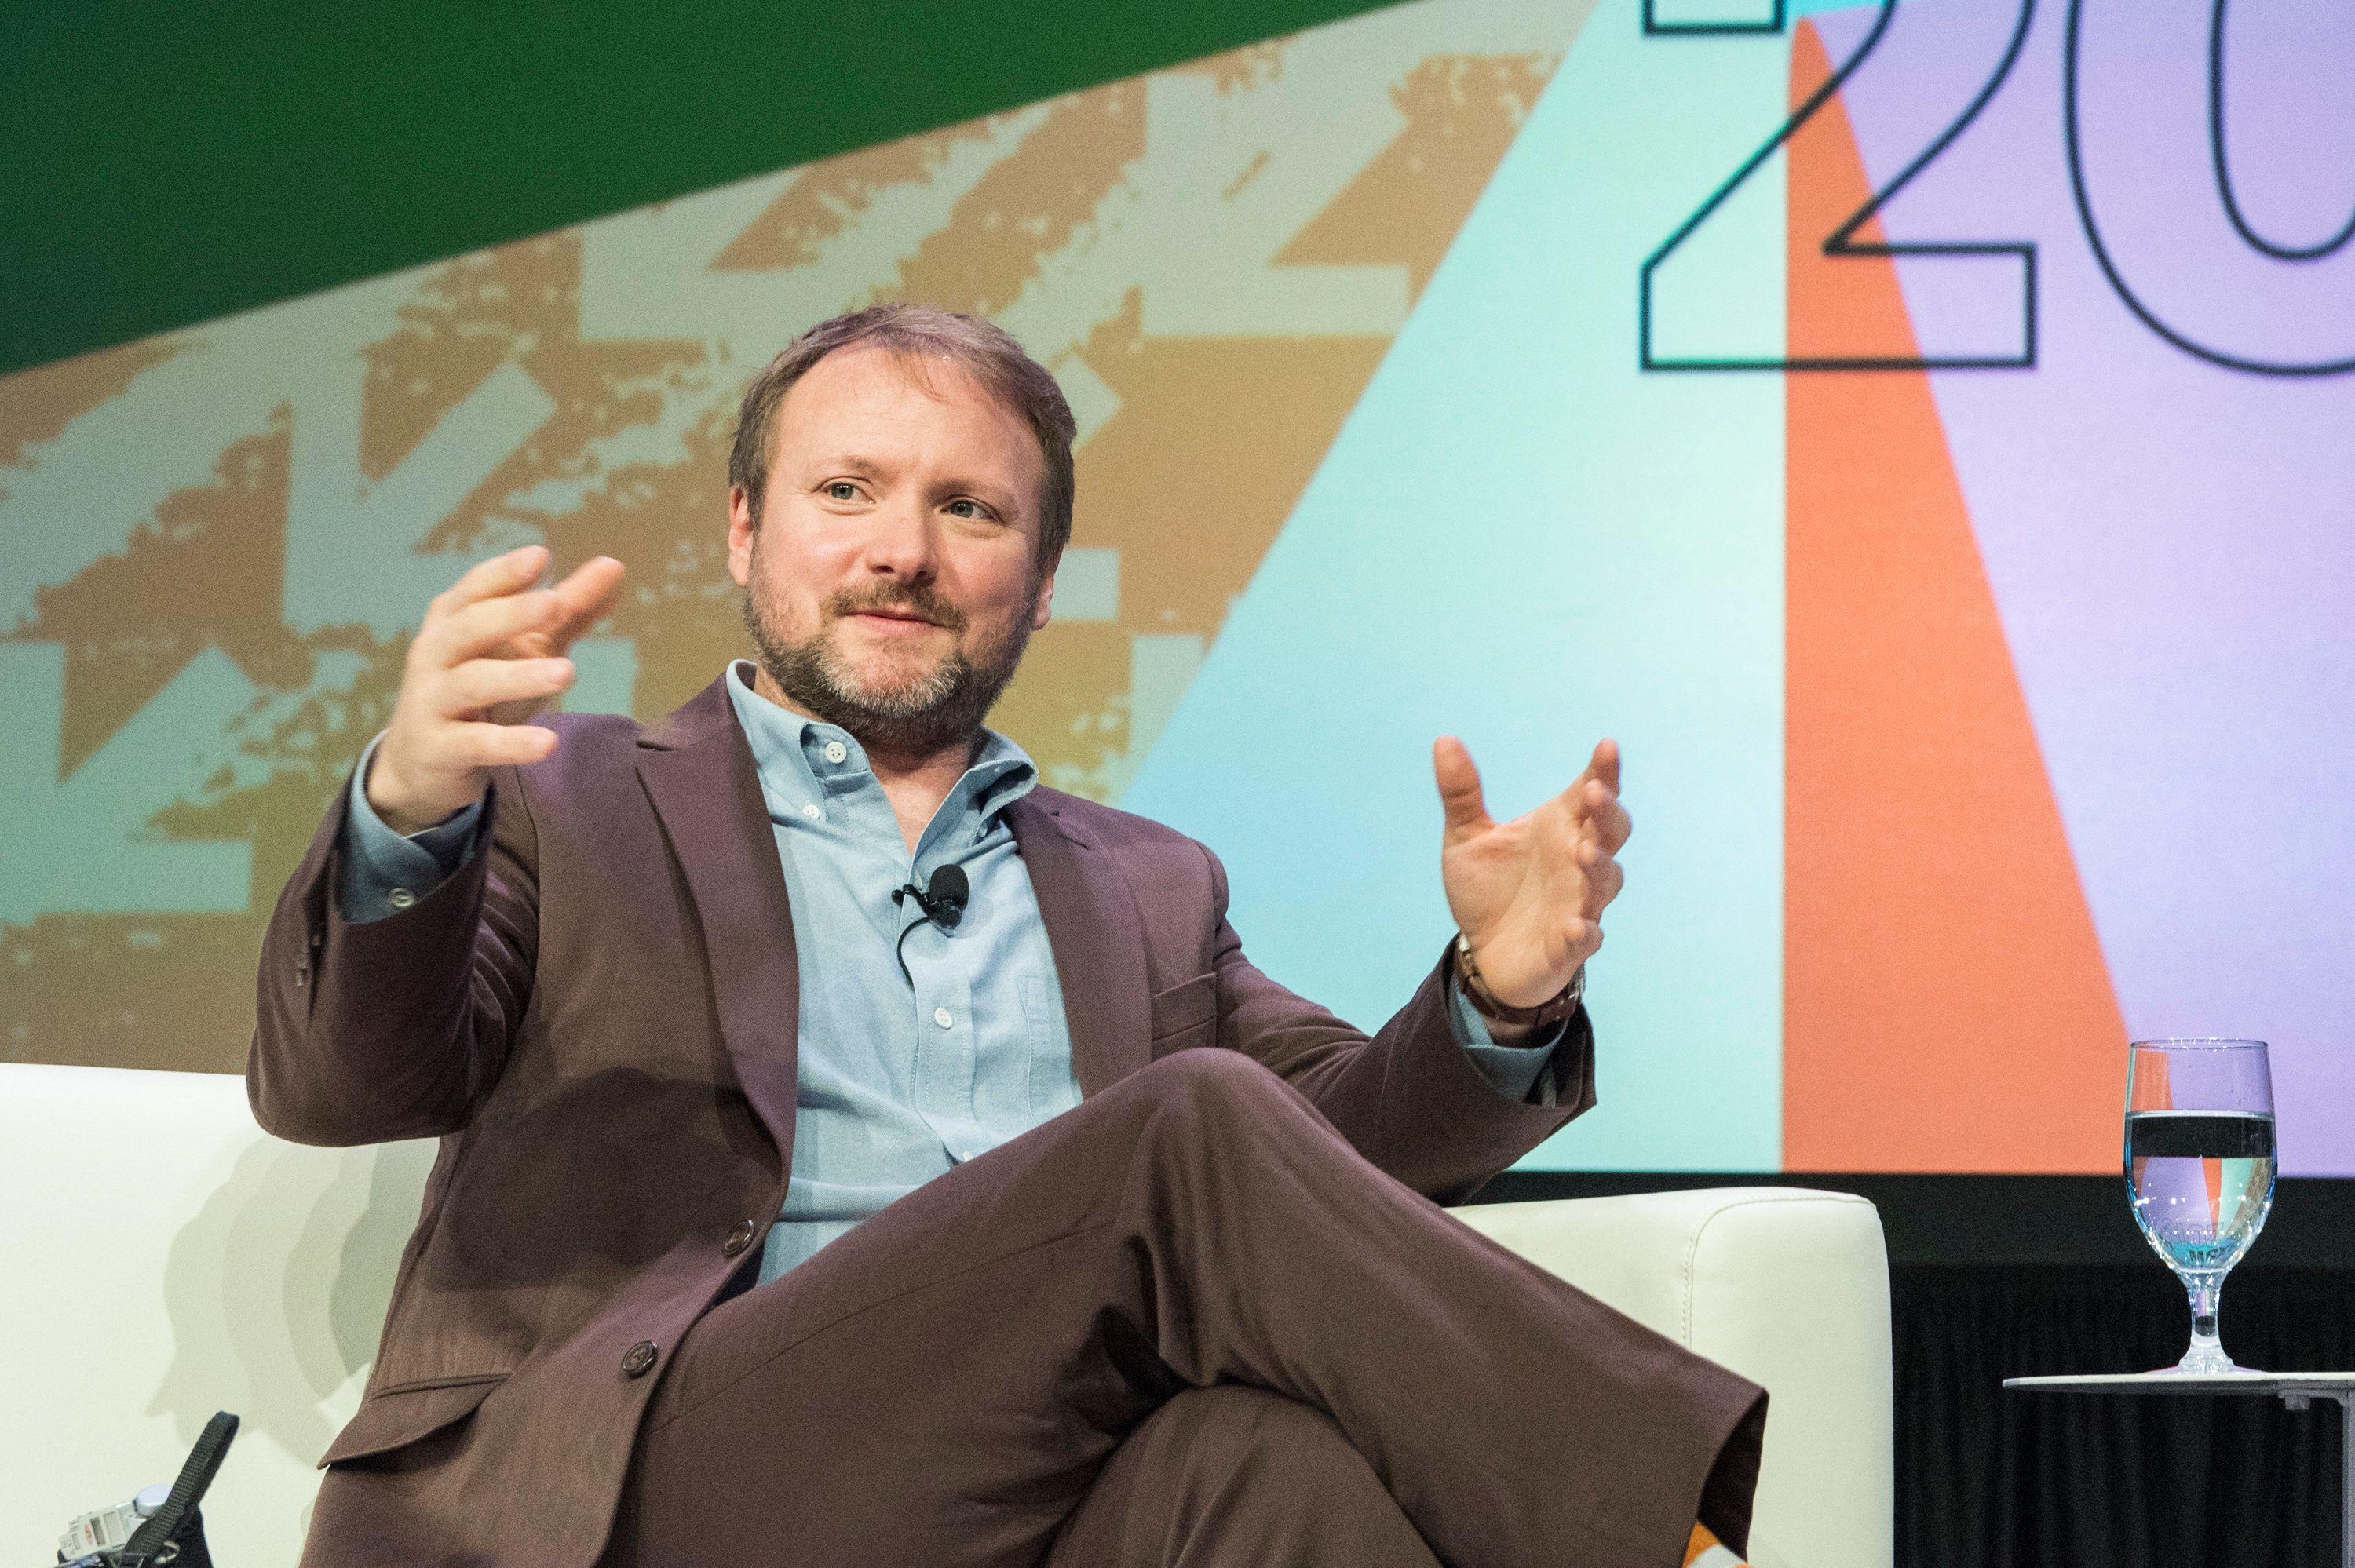 AUSTIN, TX - MARCH 12:  Director Rian Johnson speaks during his SXSW Interactive session 'Journey To Star Wars' on March 12, 2018 in Austin, Texas.  (Photo by Jim Bennett/WireImage)